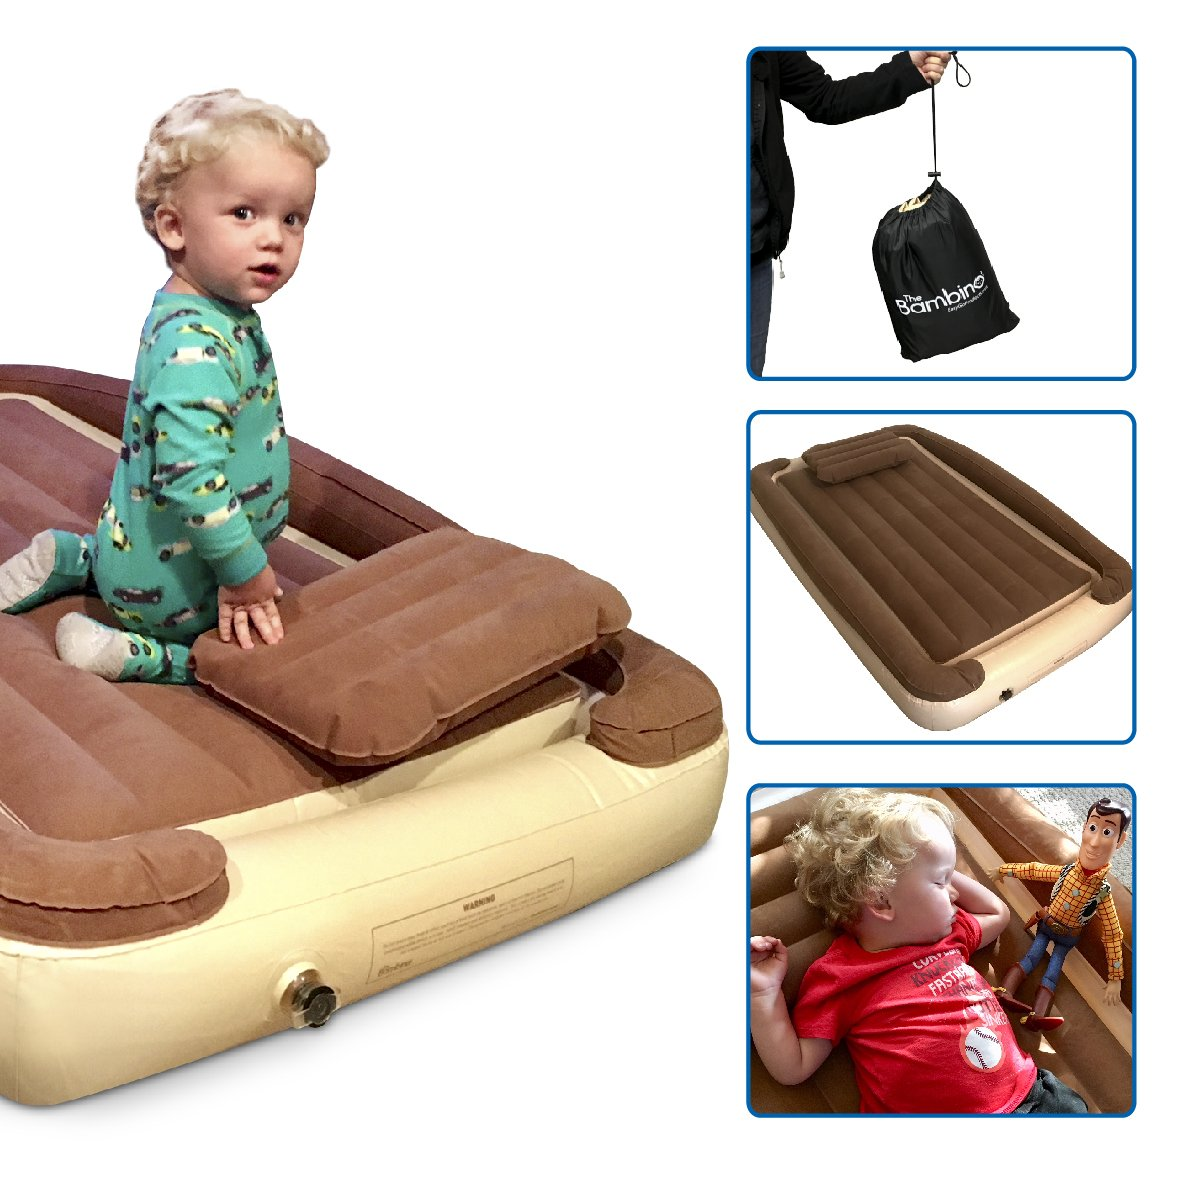 EasyGoProducts Let Your Kids Be Cozy and Safe with Our Inflatable Travel Whether This Bambino Used At Home As a Toddler Portable Bed When Growing Out of a Rails EGP-BMB-001